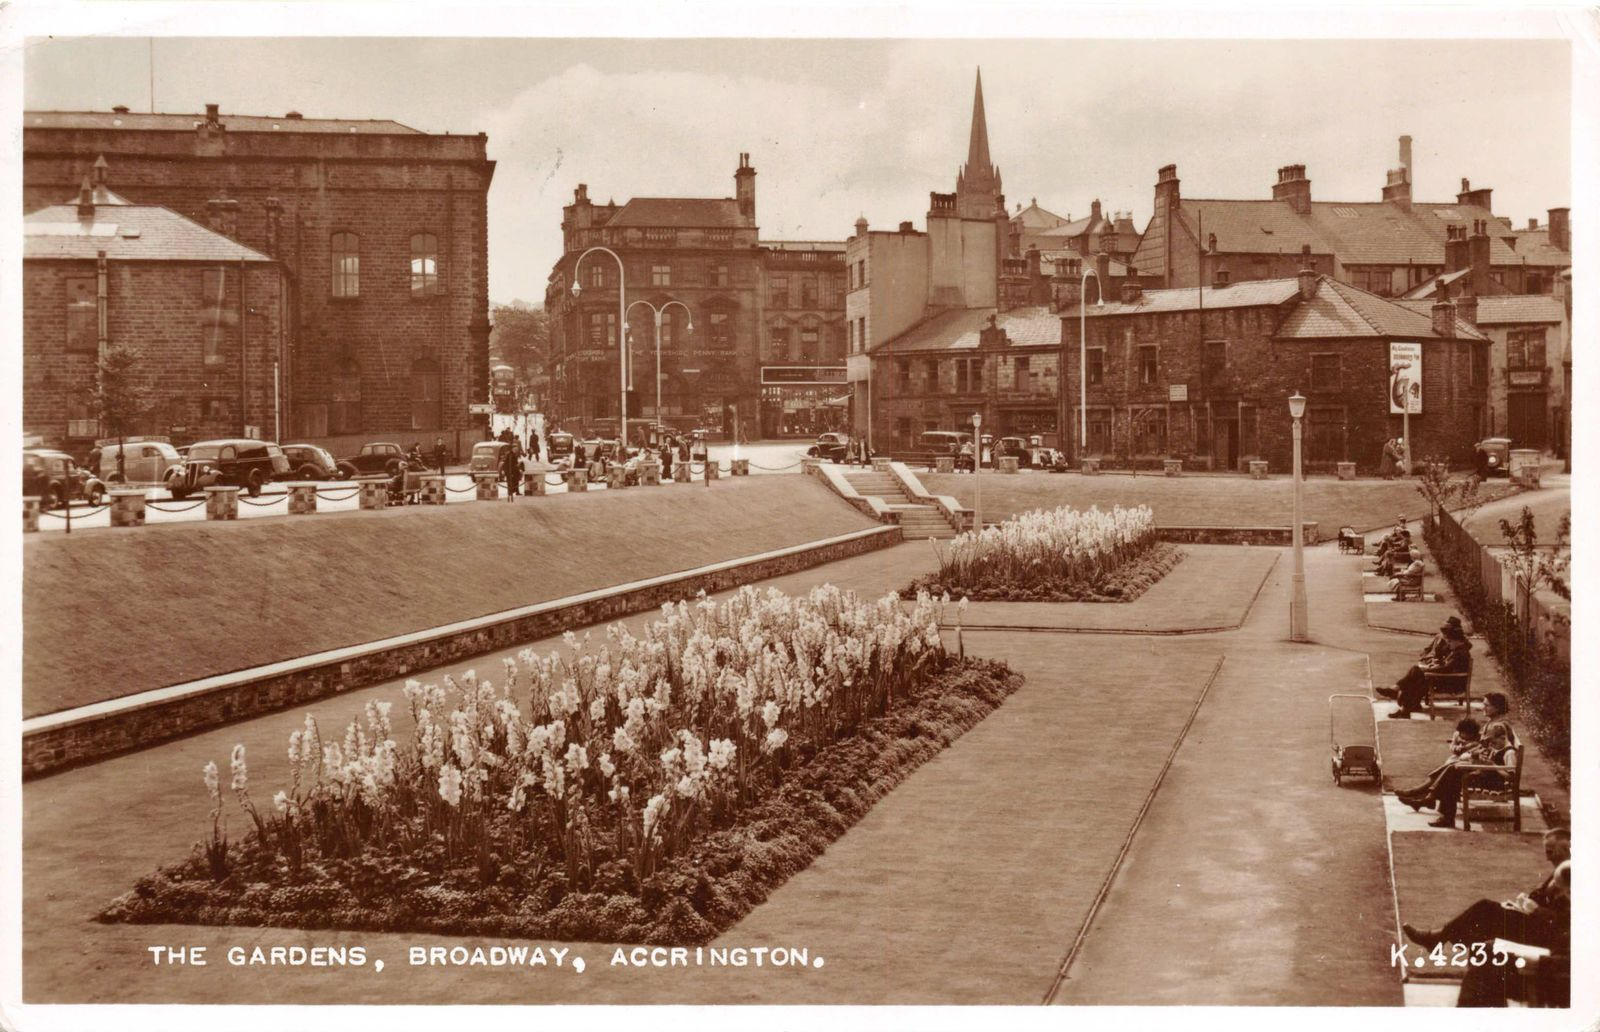 R111238 The Gardens. Broadway. Accrington. Valentine. RP. 1954